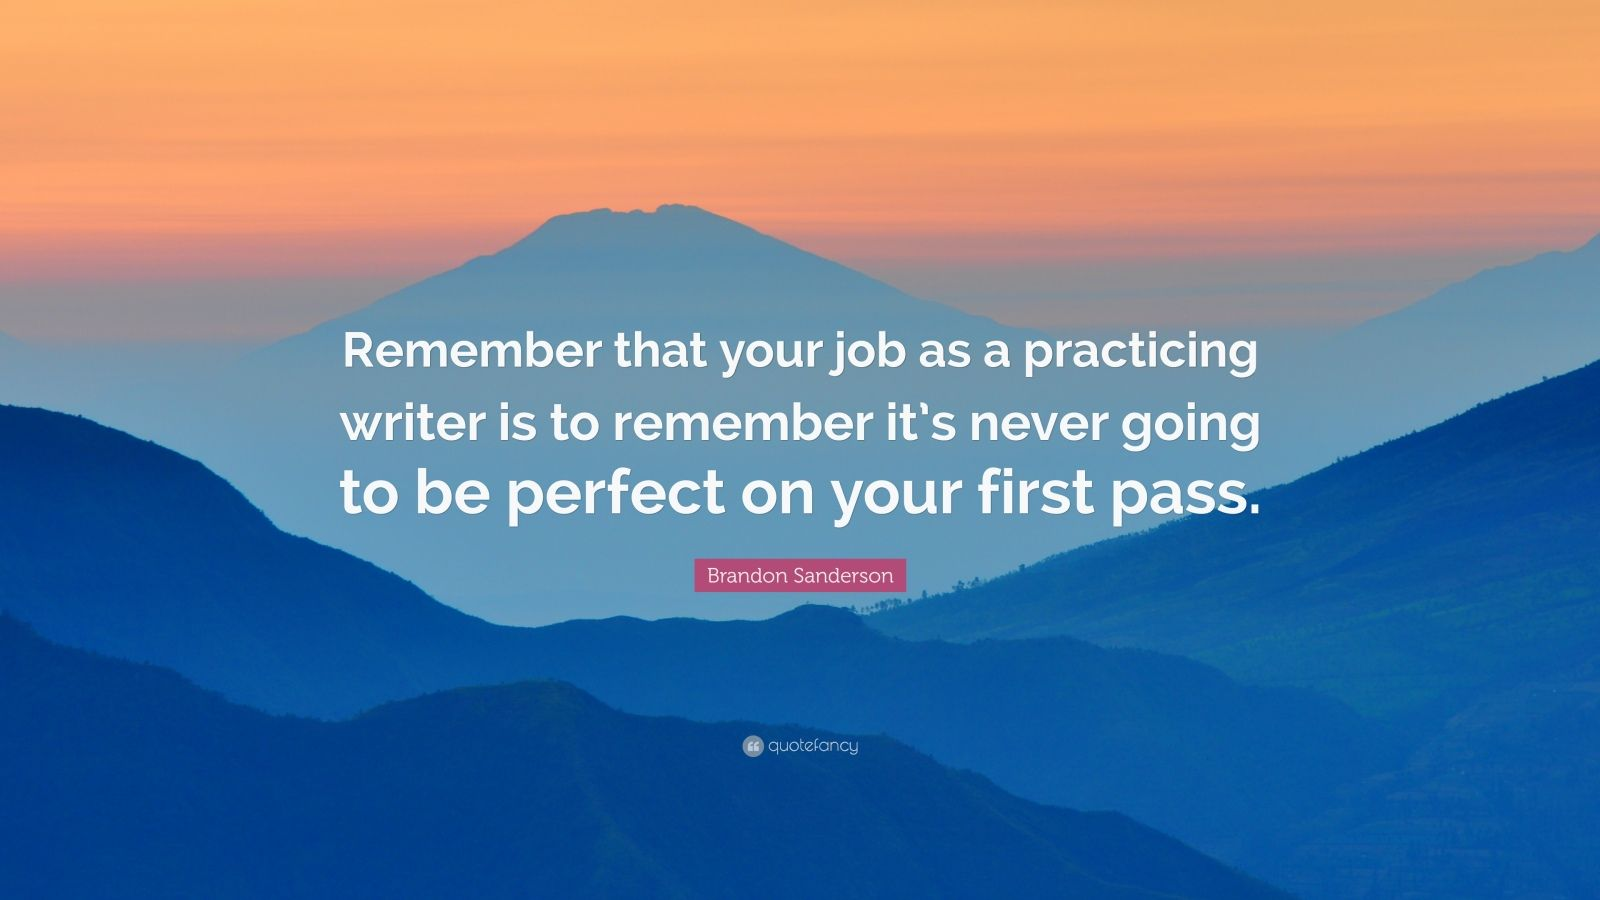 brandon sanderson quotes quotefancy brandon sanderson quote remember that your job as a practicing writer is to remember